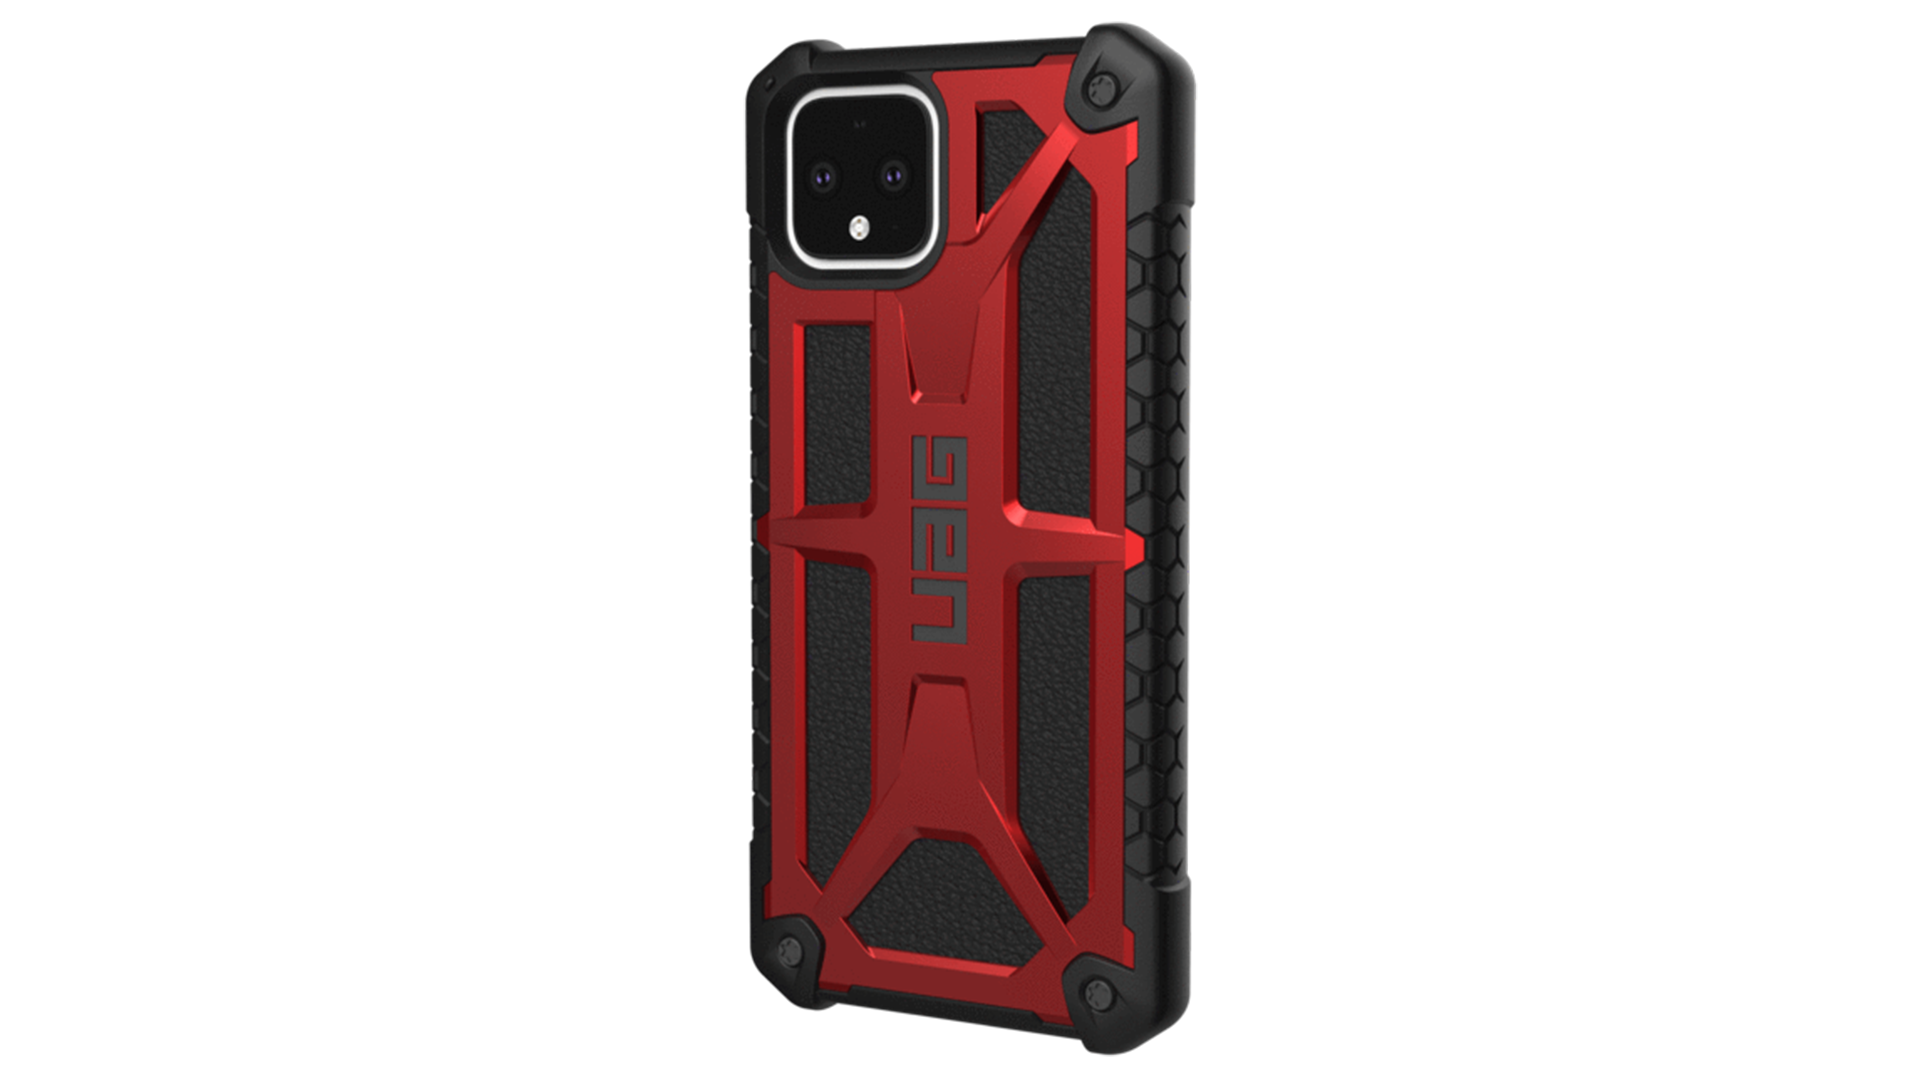 A Pixel 4 in a rugged UAG case.